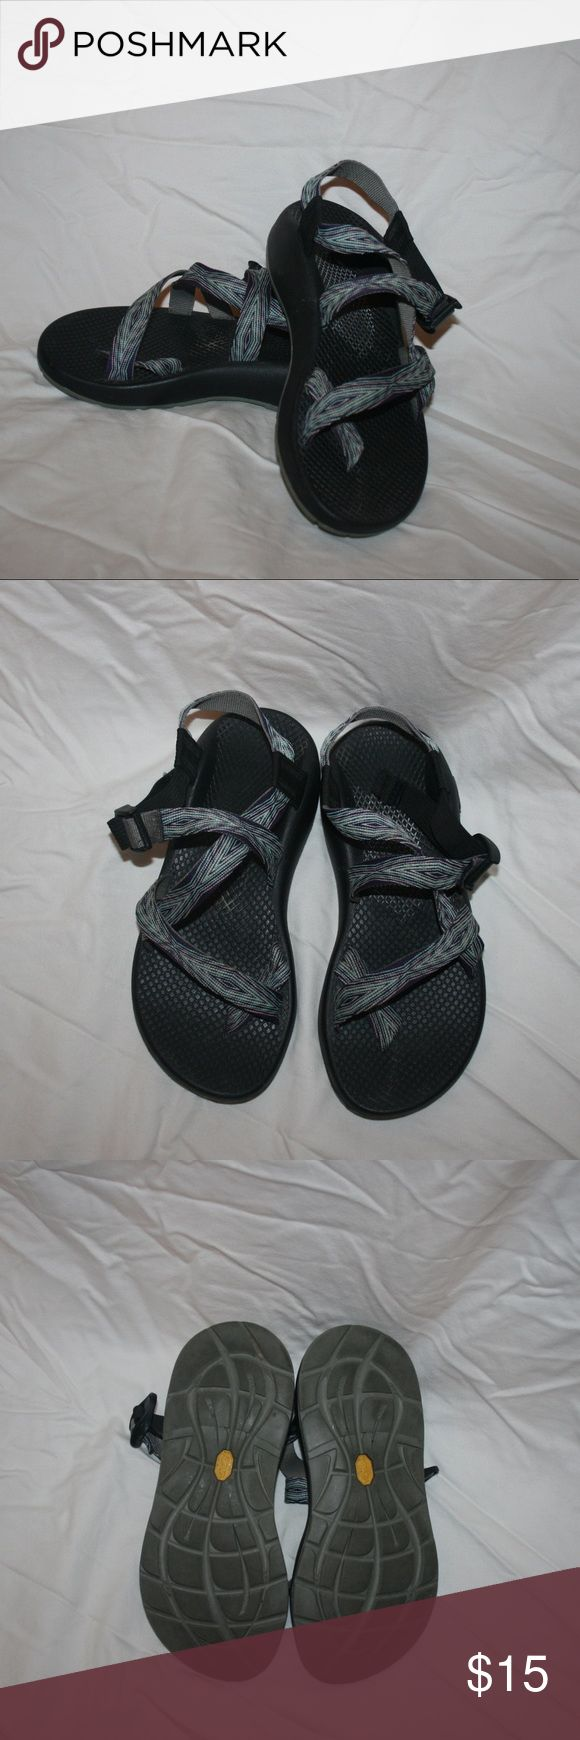 Chaco Sandals ***PLEASE HELP THE CAUSE!- 20% of all earnings from each sale is donated to RAINN (https://www.rainn.org/donate), the anti-sexual assault organization. Let's fight this battle together ladies & gentlemen!!***  Smoke free & pet free home!! You don't have to worry about the stench of smoke or allergens such as pet hair. Shoes Athletic Shoes